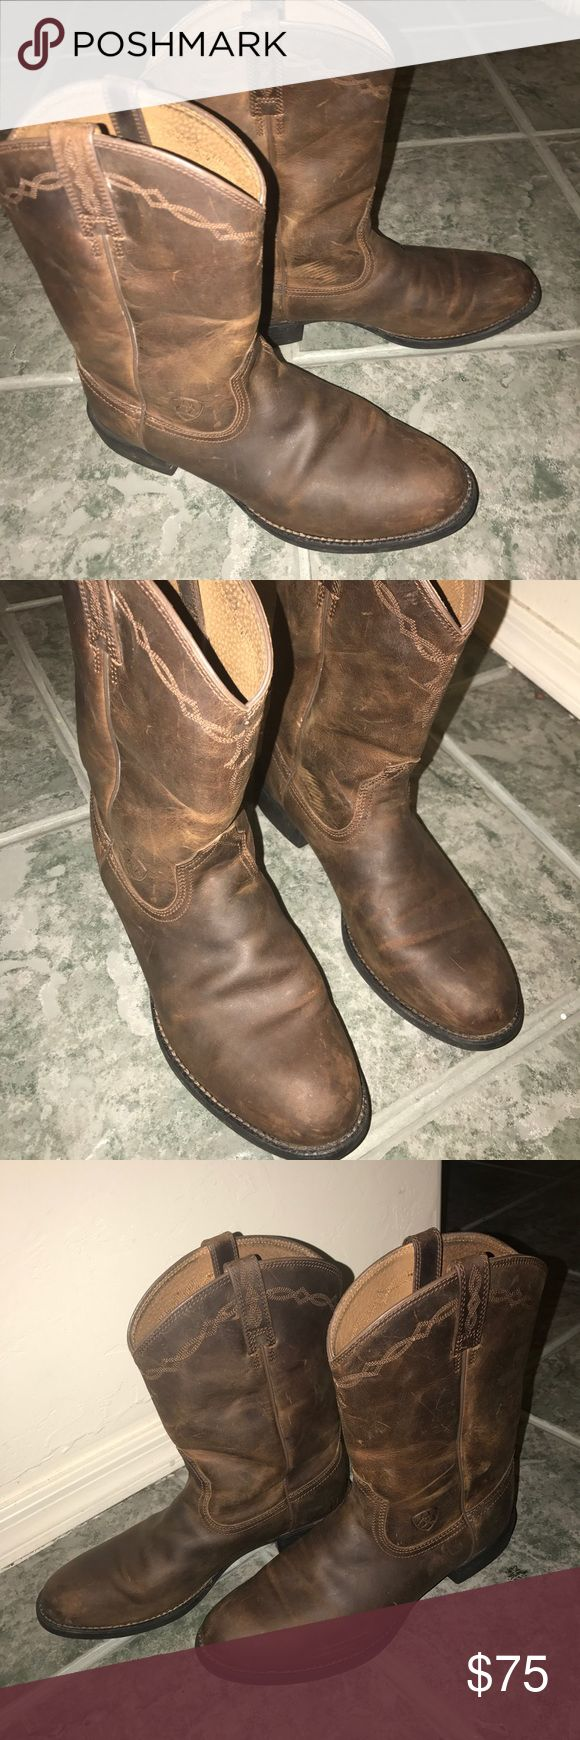 Women's Ariat Cow boy boots size 8.5 Women's Ariat cow boy boots size 8.5, boots as pictured Ariat Shoes Ankle Boots & Booties